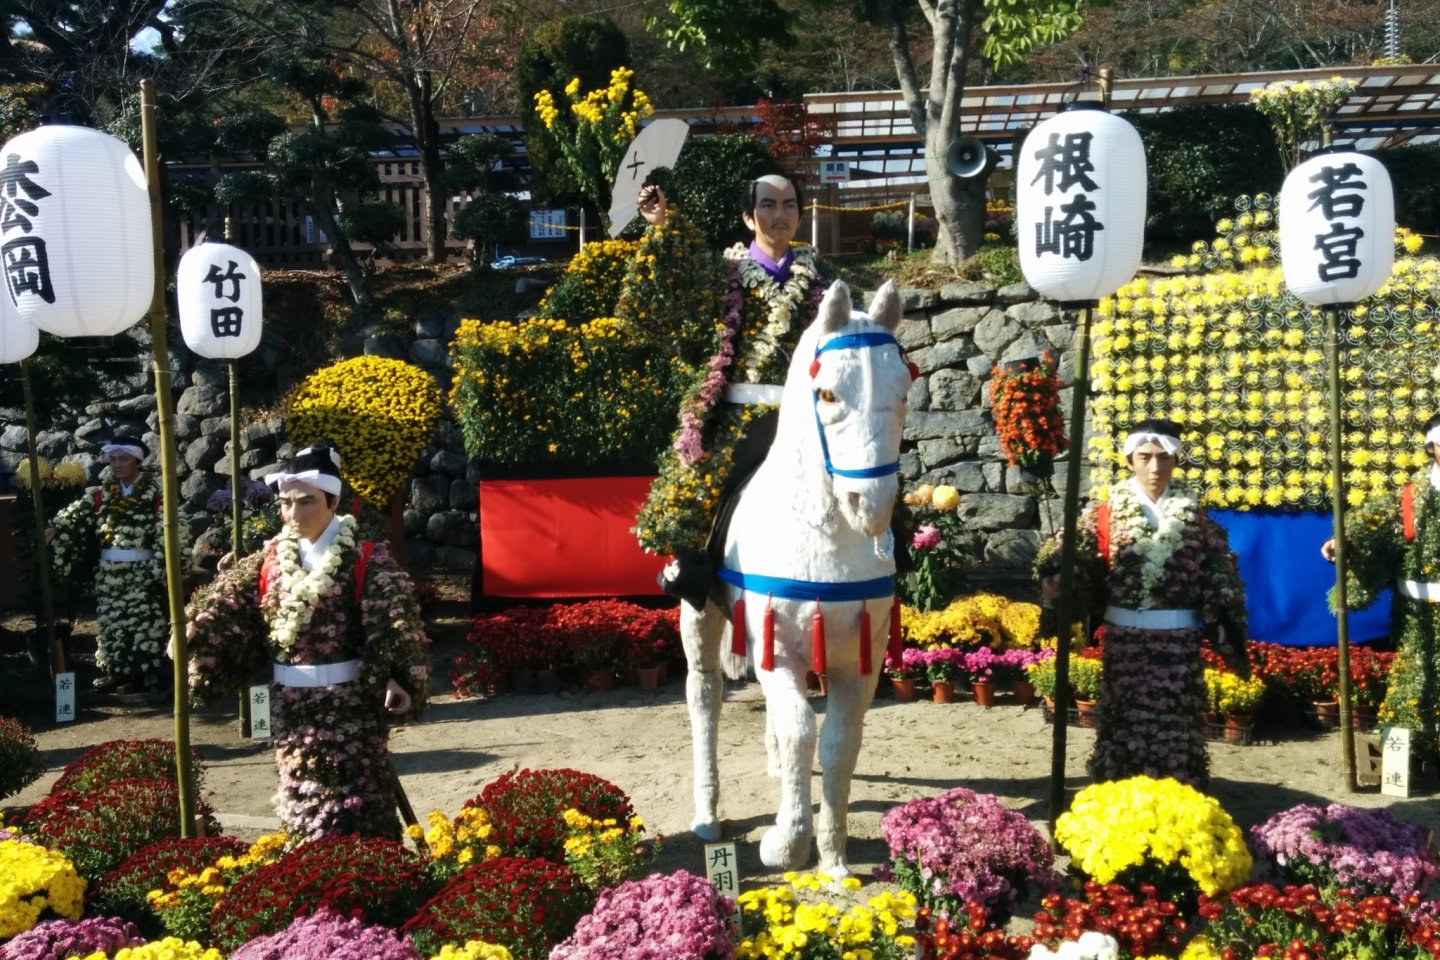 One of the highlights of the festival is this scene of flower dolls and potted flowers along the water